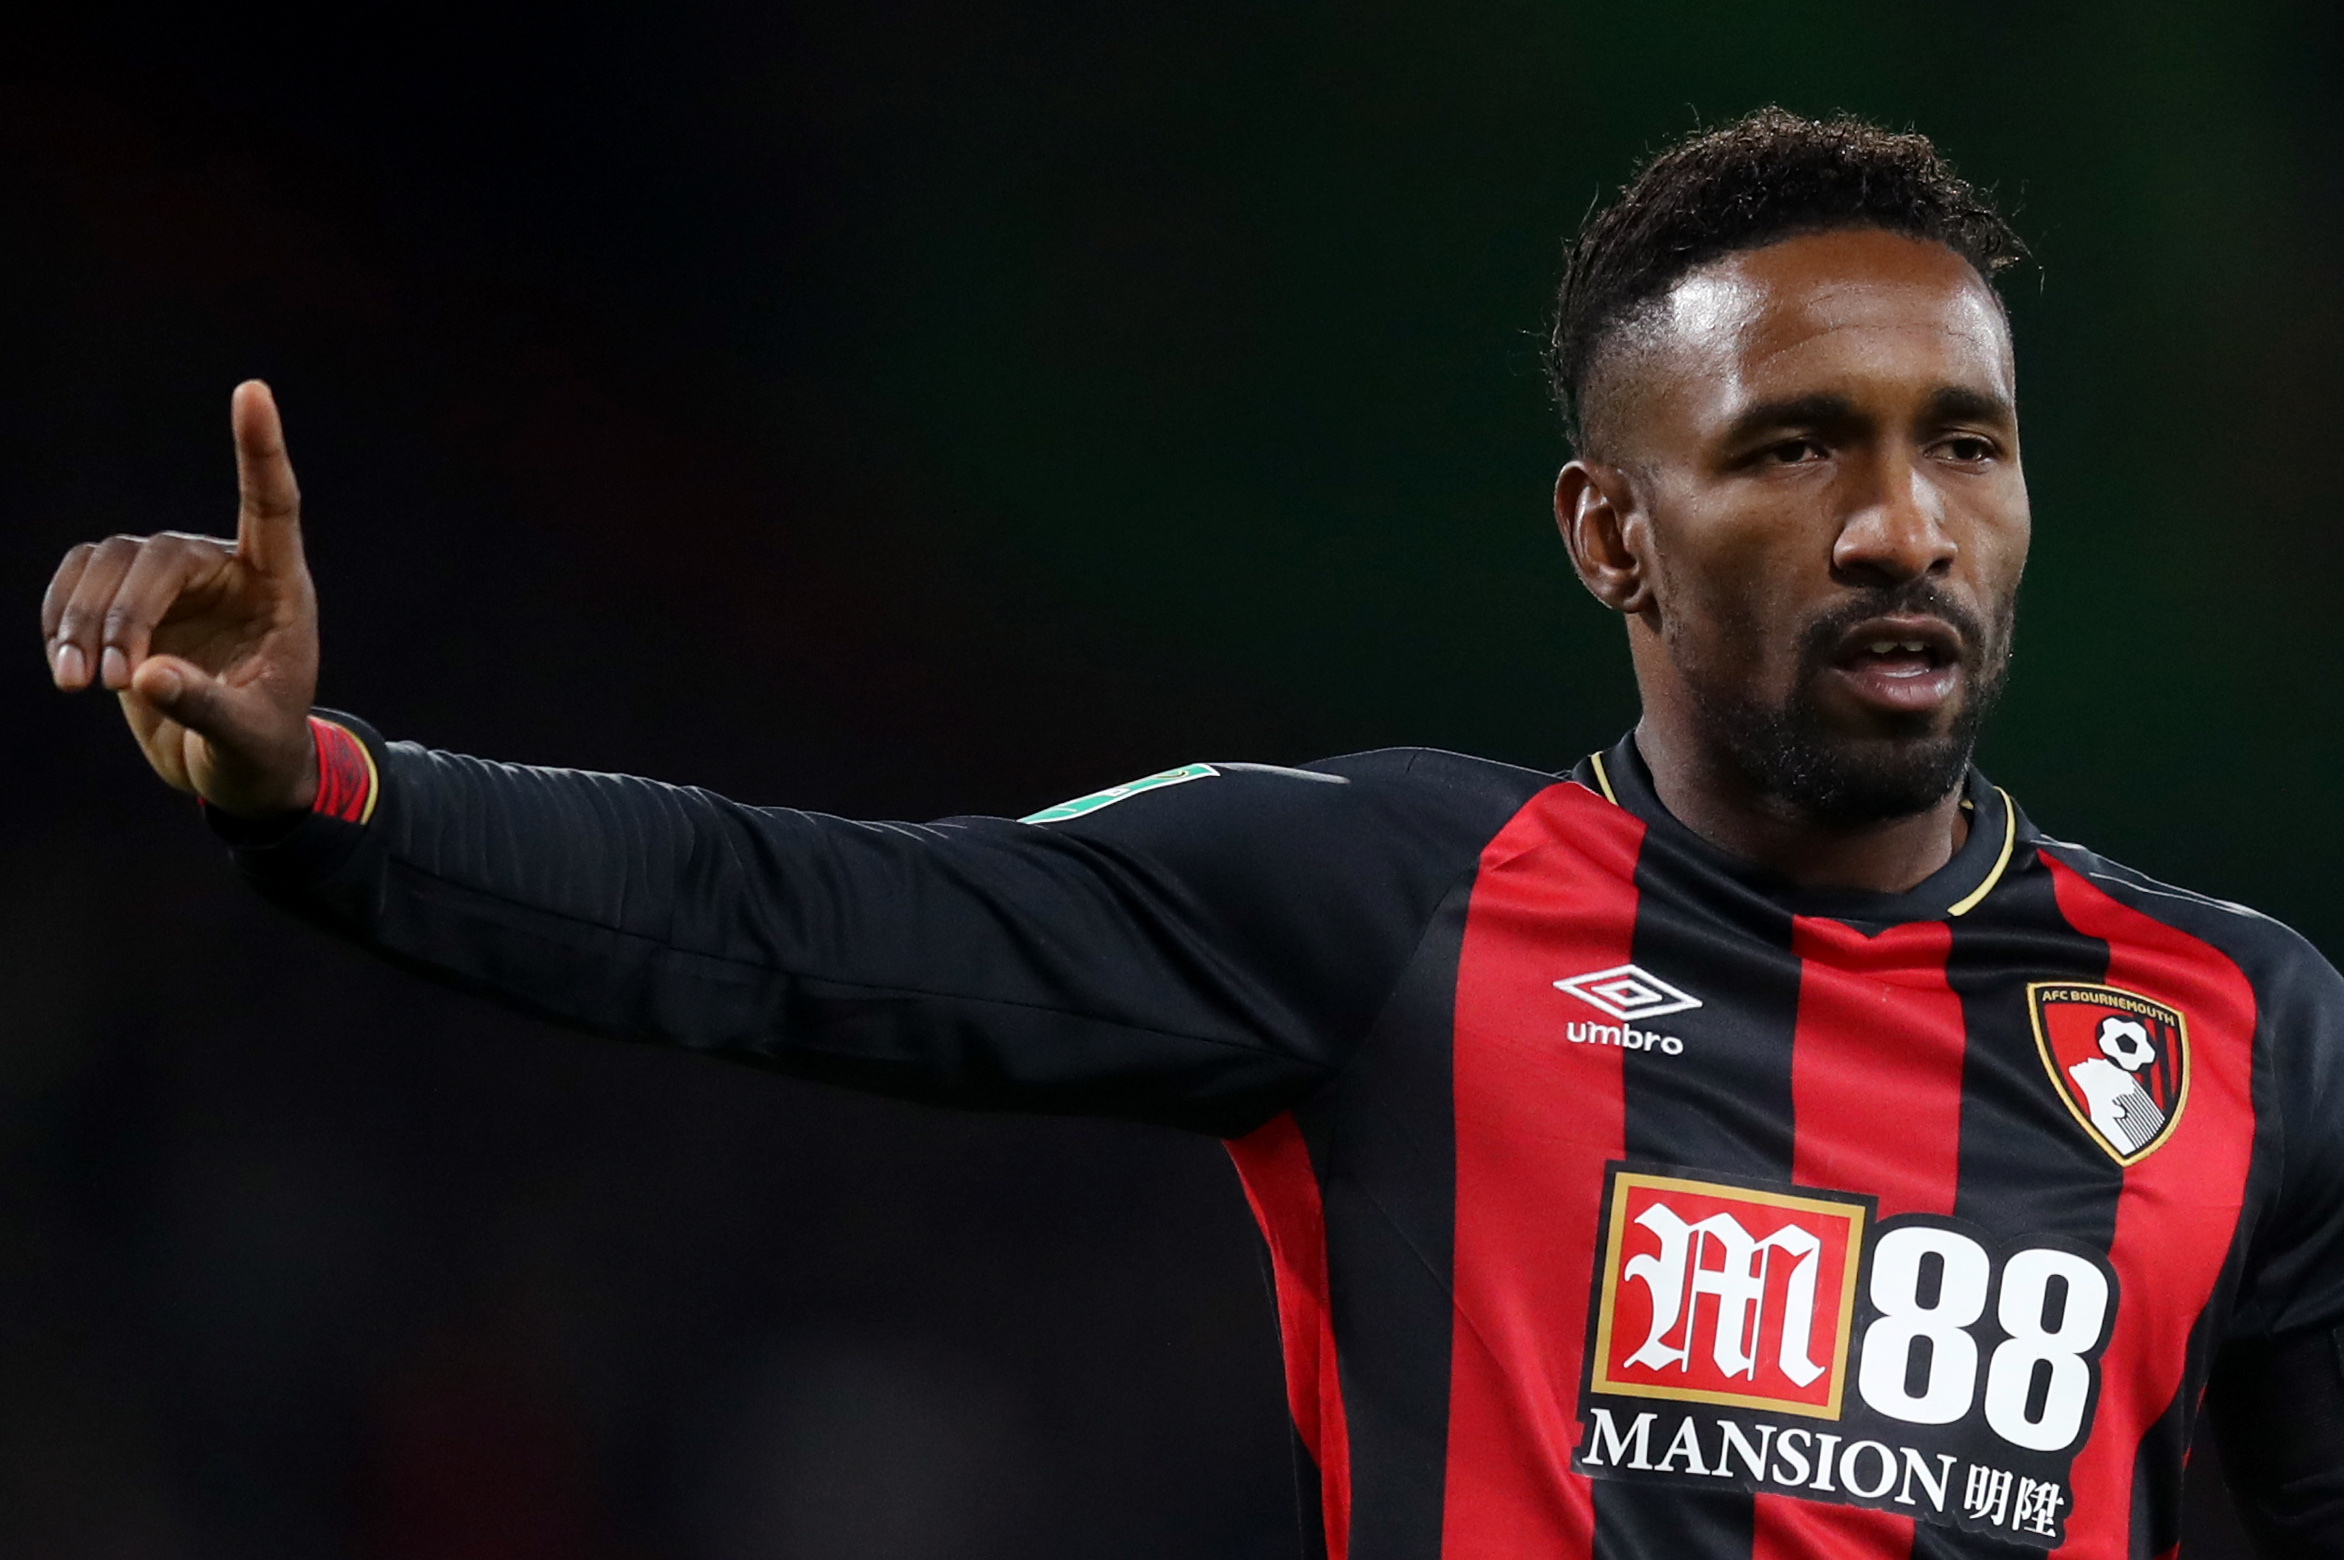 Jermain Defoe on his decision to join Rangers, the advice from Ibrox heroes and his mental challenges of not playing at Bournemouth